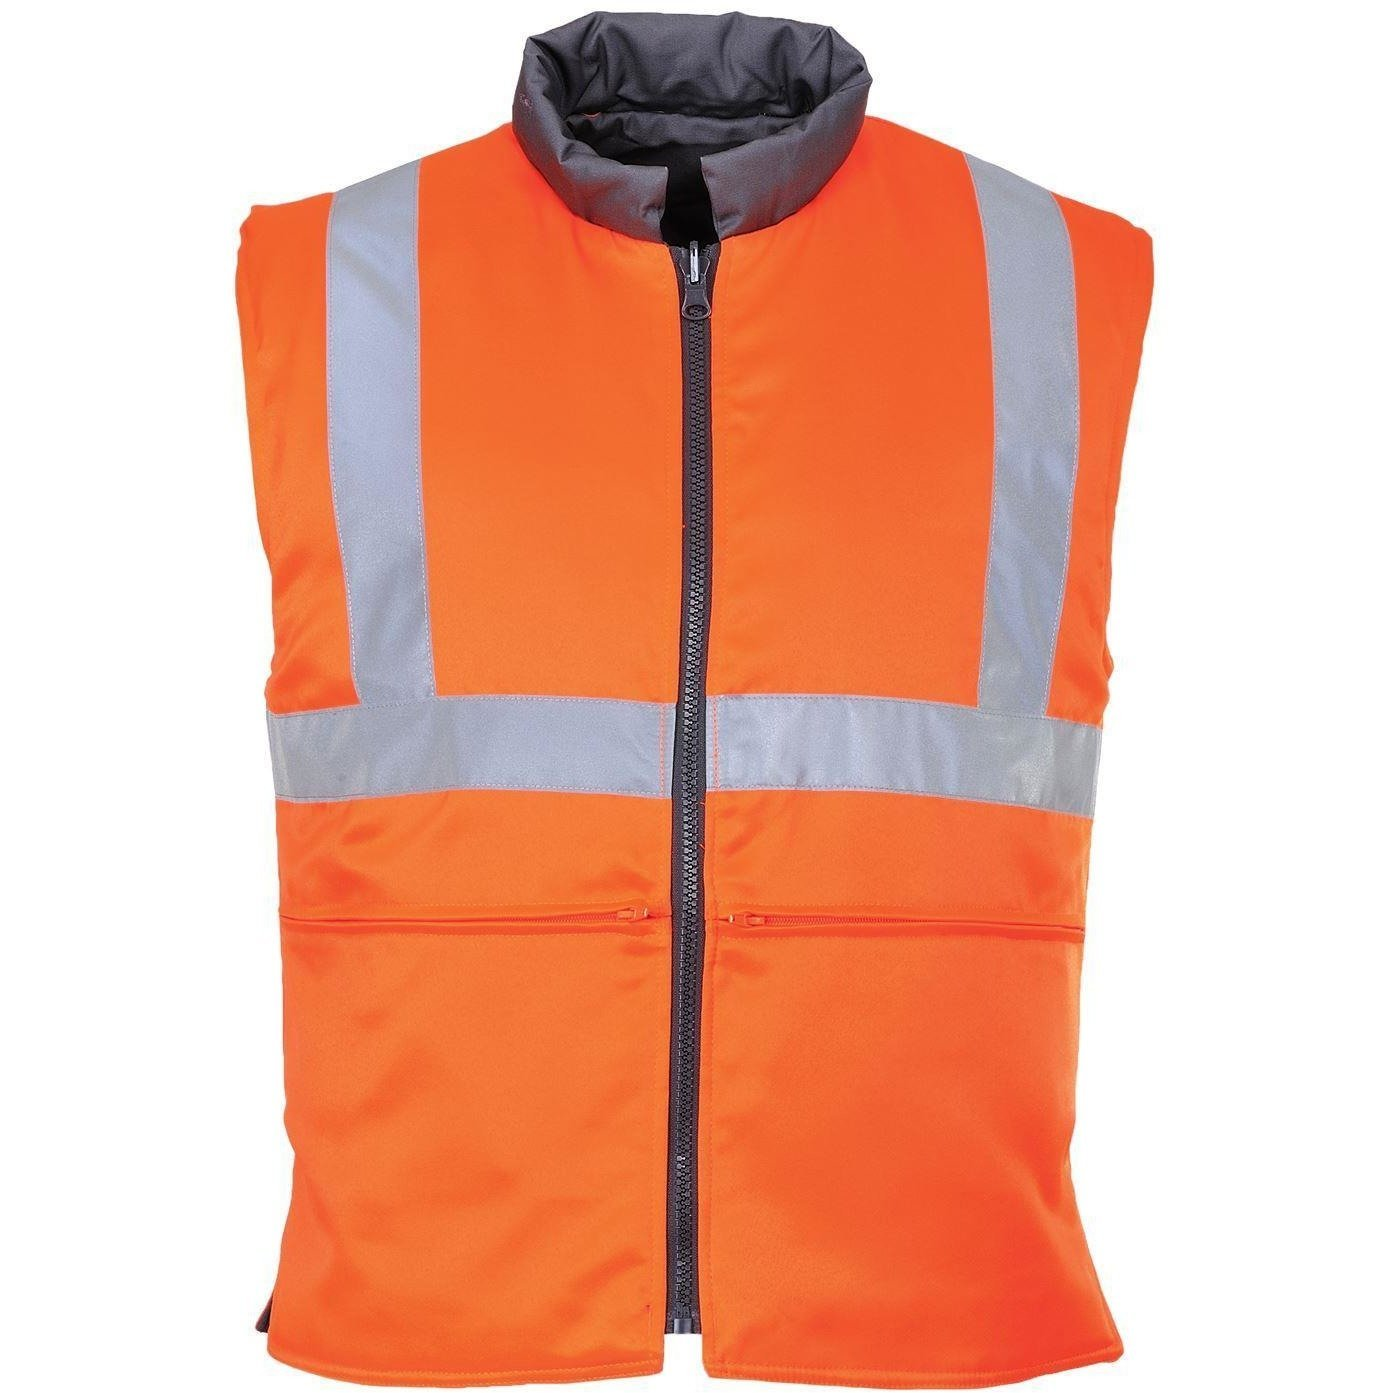 Portwest Hi-Vis Reversible Bodywarmer GO/RT RT44 - reid outdoors